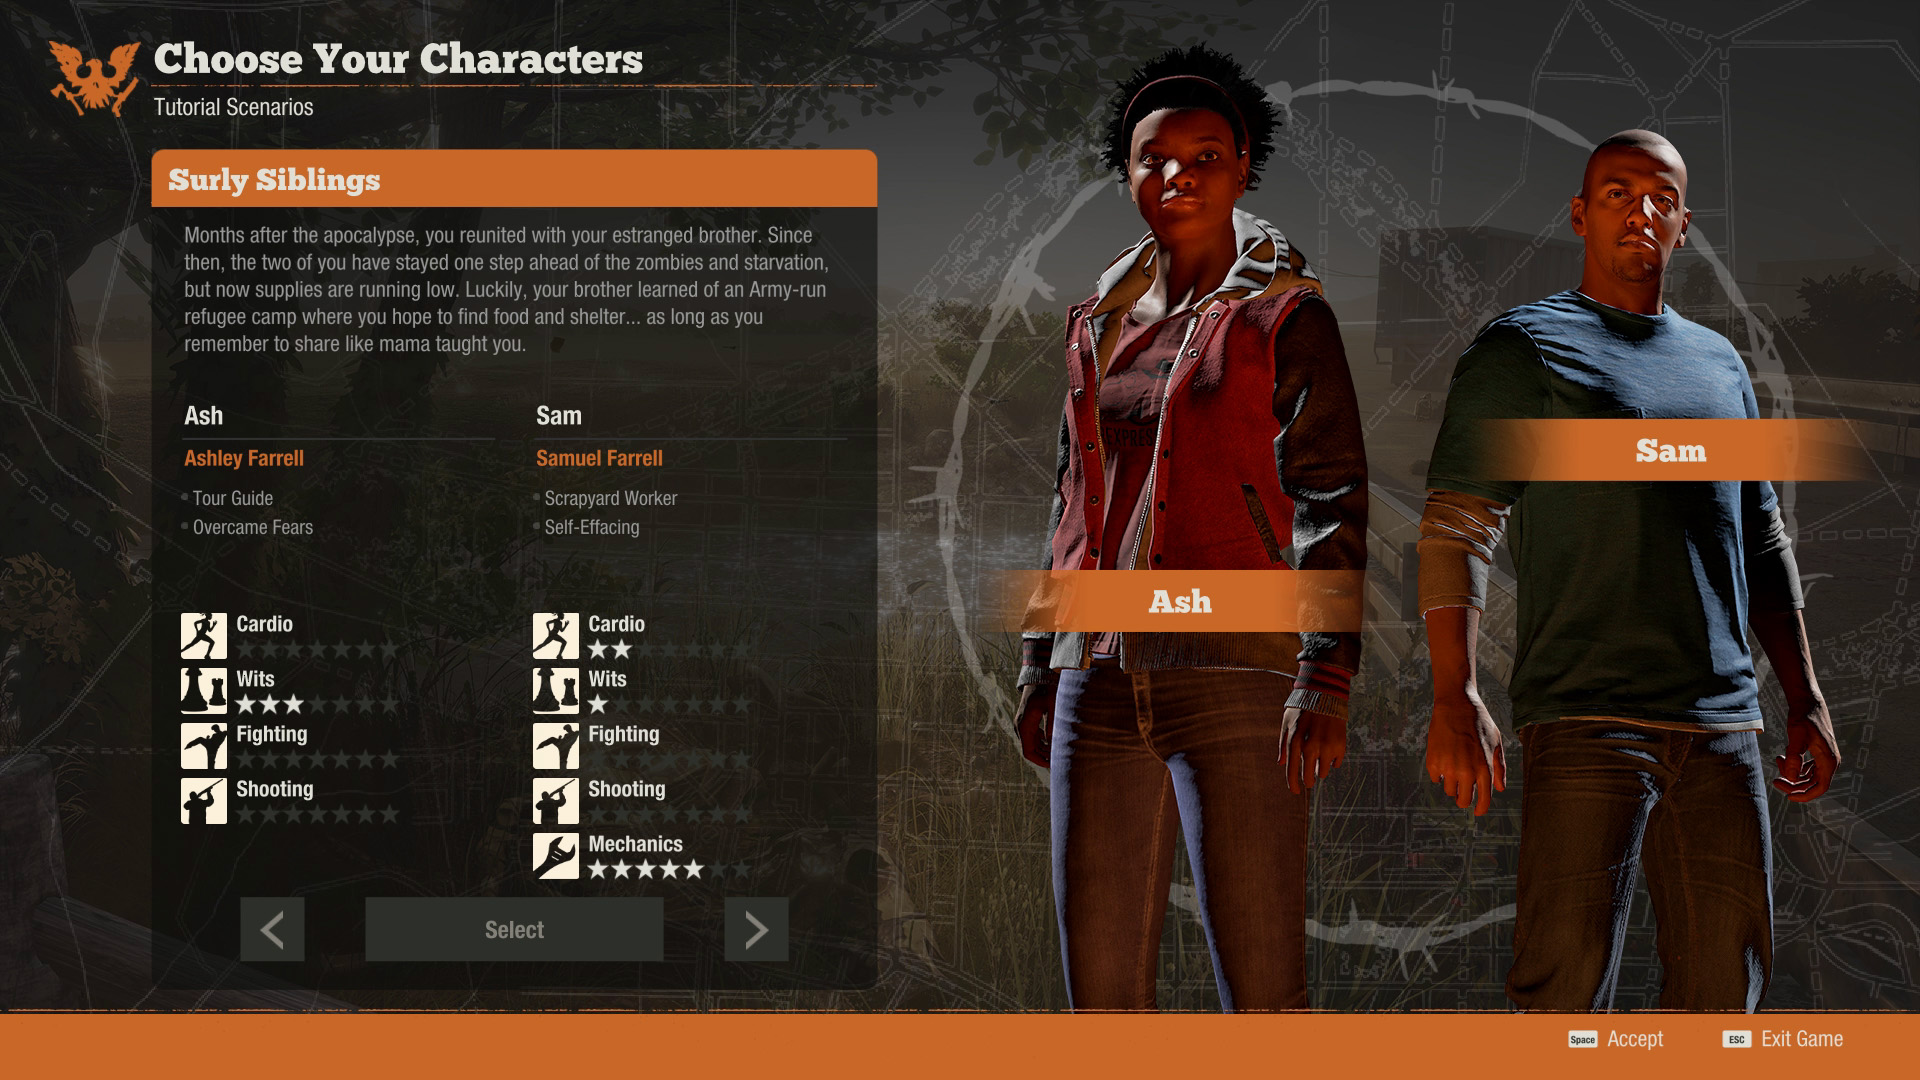 State of Decay 2 Tips - Controls Guide, How to Save, How to ... on destiny map size, red dead redemption map size, tomb raider map size, grand theft auto iv map size, sunset overdrive map size, forza horizon 2 map size, star citizen map size, just cause 3 map size, x rebirth map size, unturned map size, minecraft map size, the witcher map size, wasteland 2 map size, rage map size, deadlight map size, h1z1 map size, game of thrones map size, 7 days to die map size, open world map size, the forest map size,